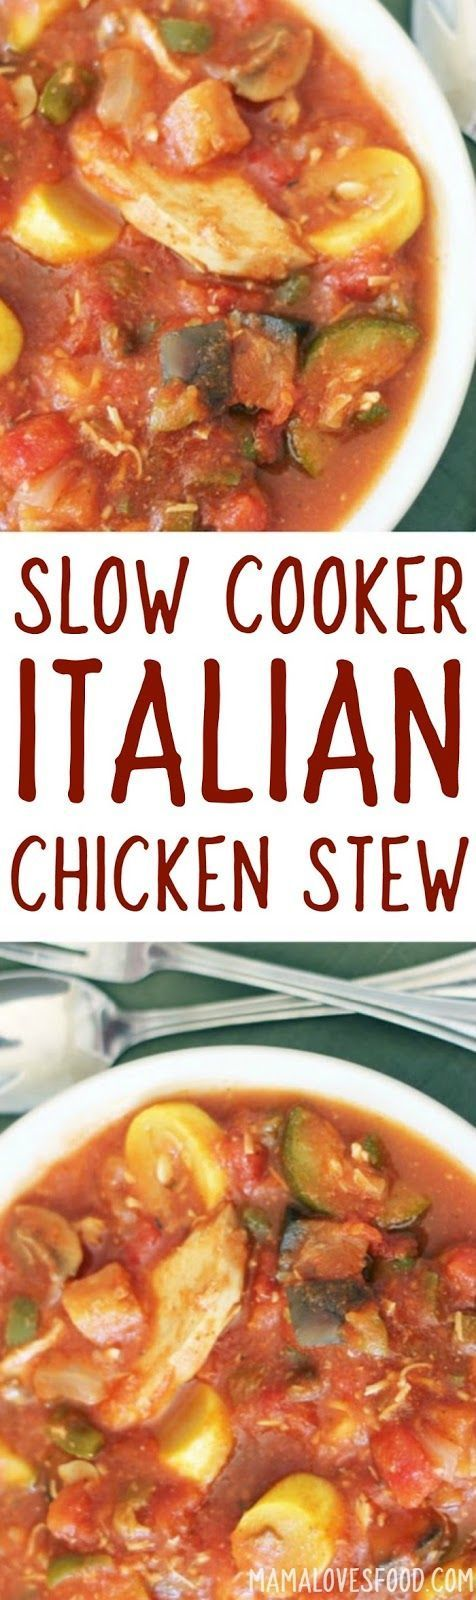 whole family liked it - will make again!  Slow Cooker Italian Stew Recipe with Chicken